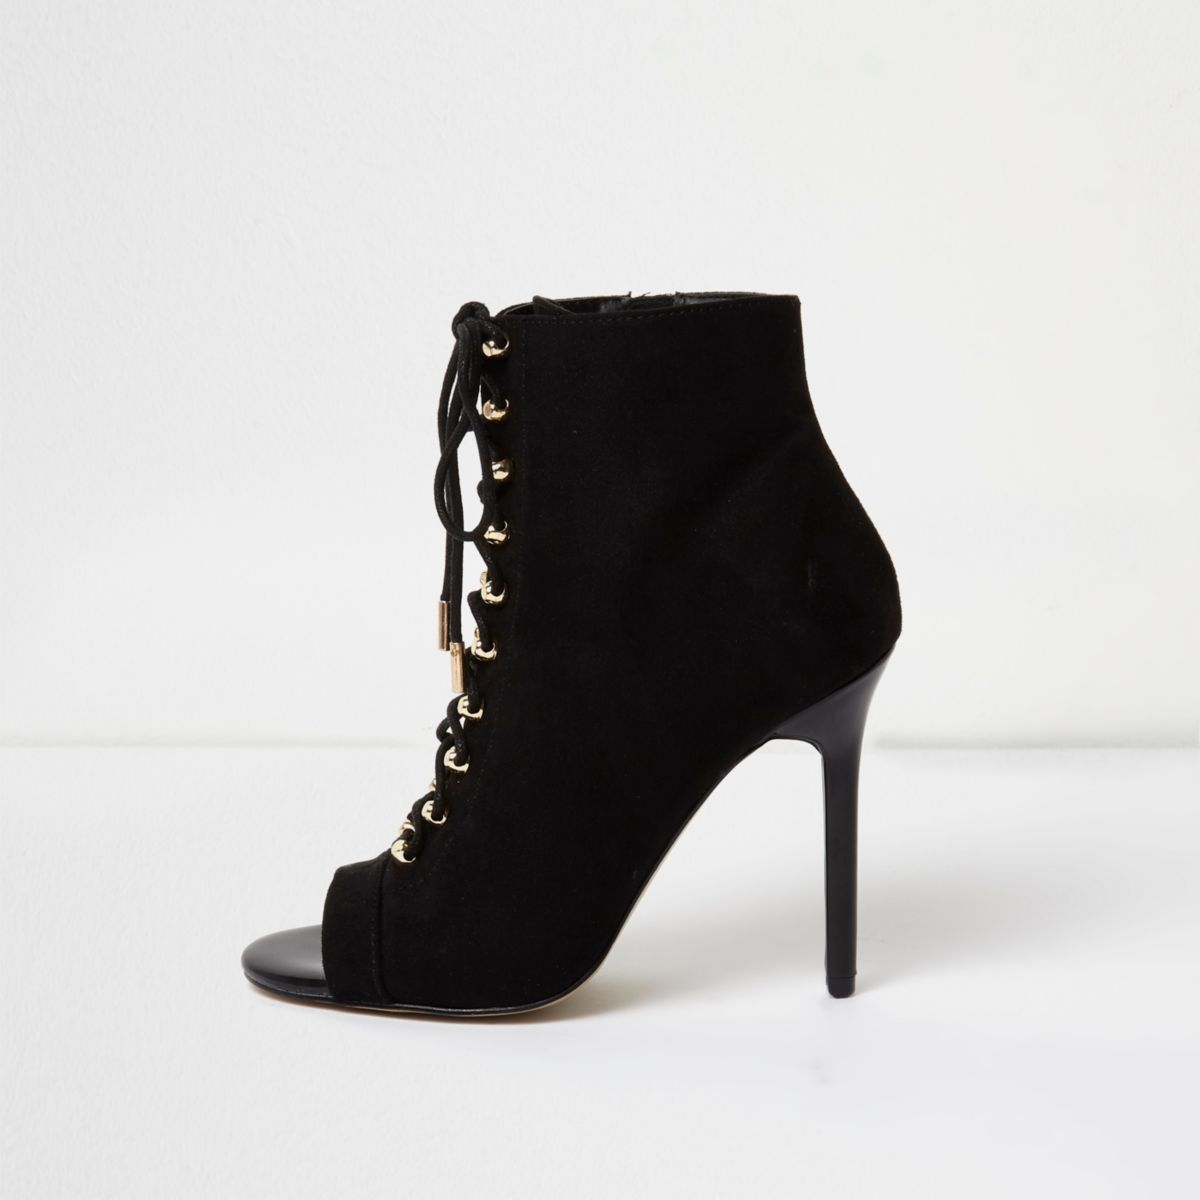 Bottines peep toe noires lacées à talon